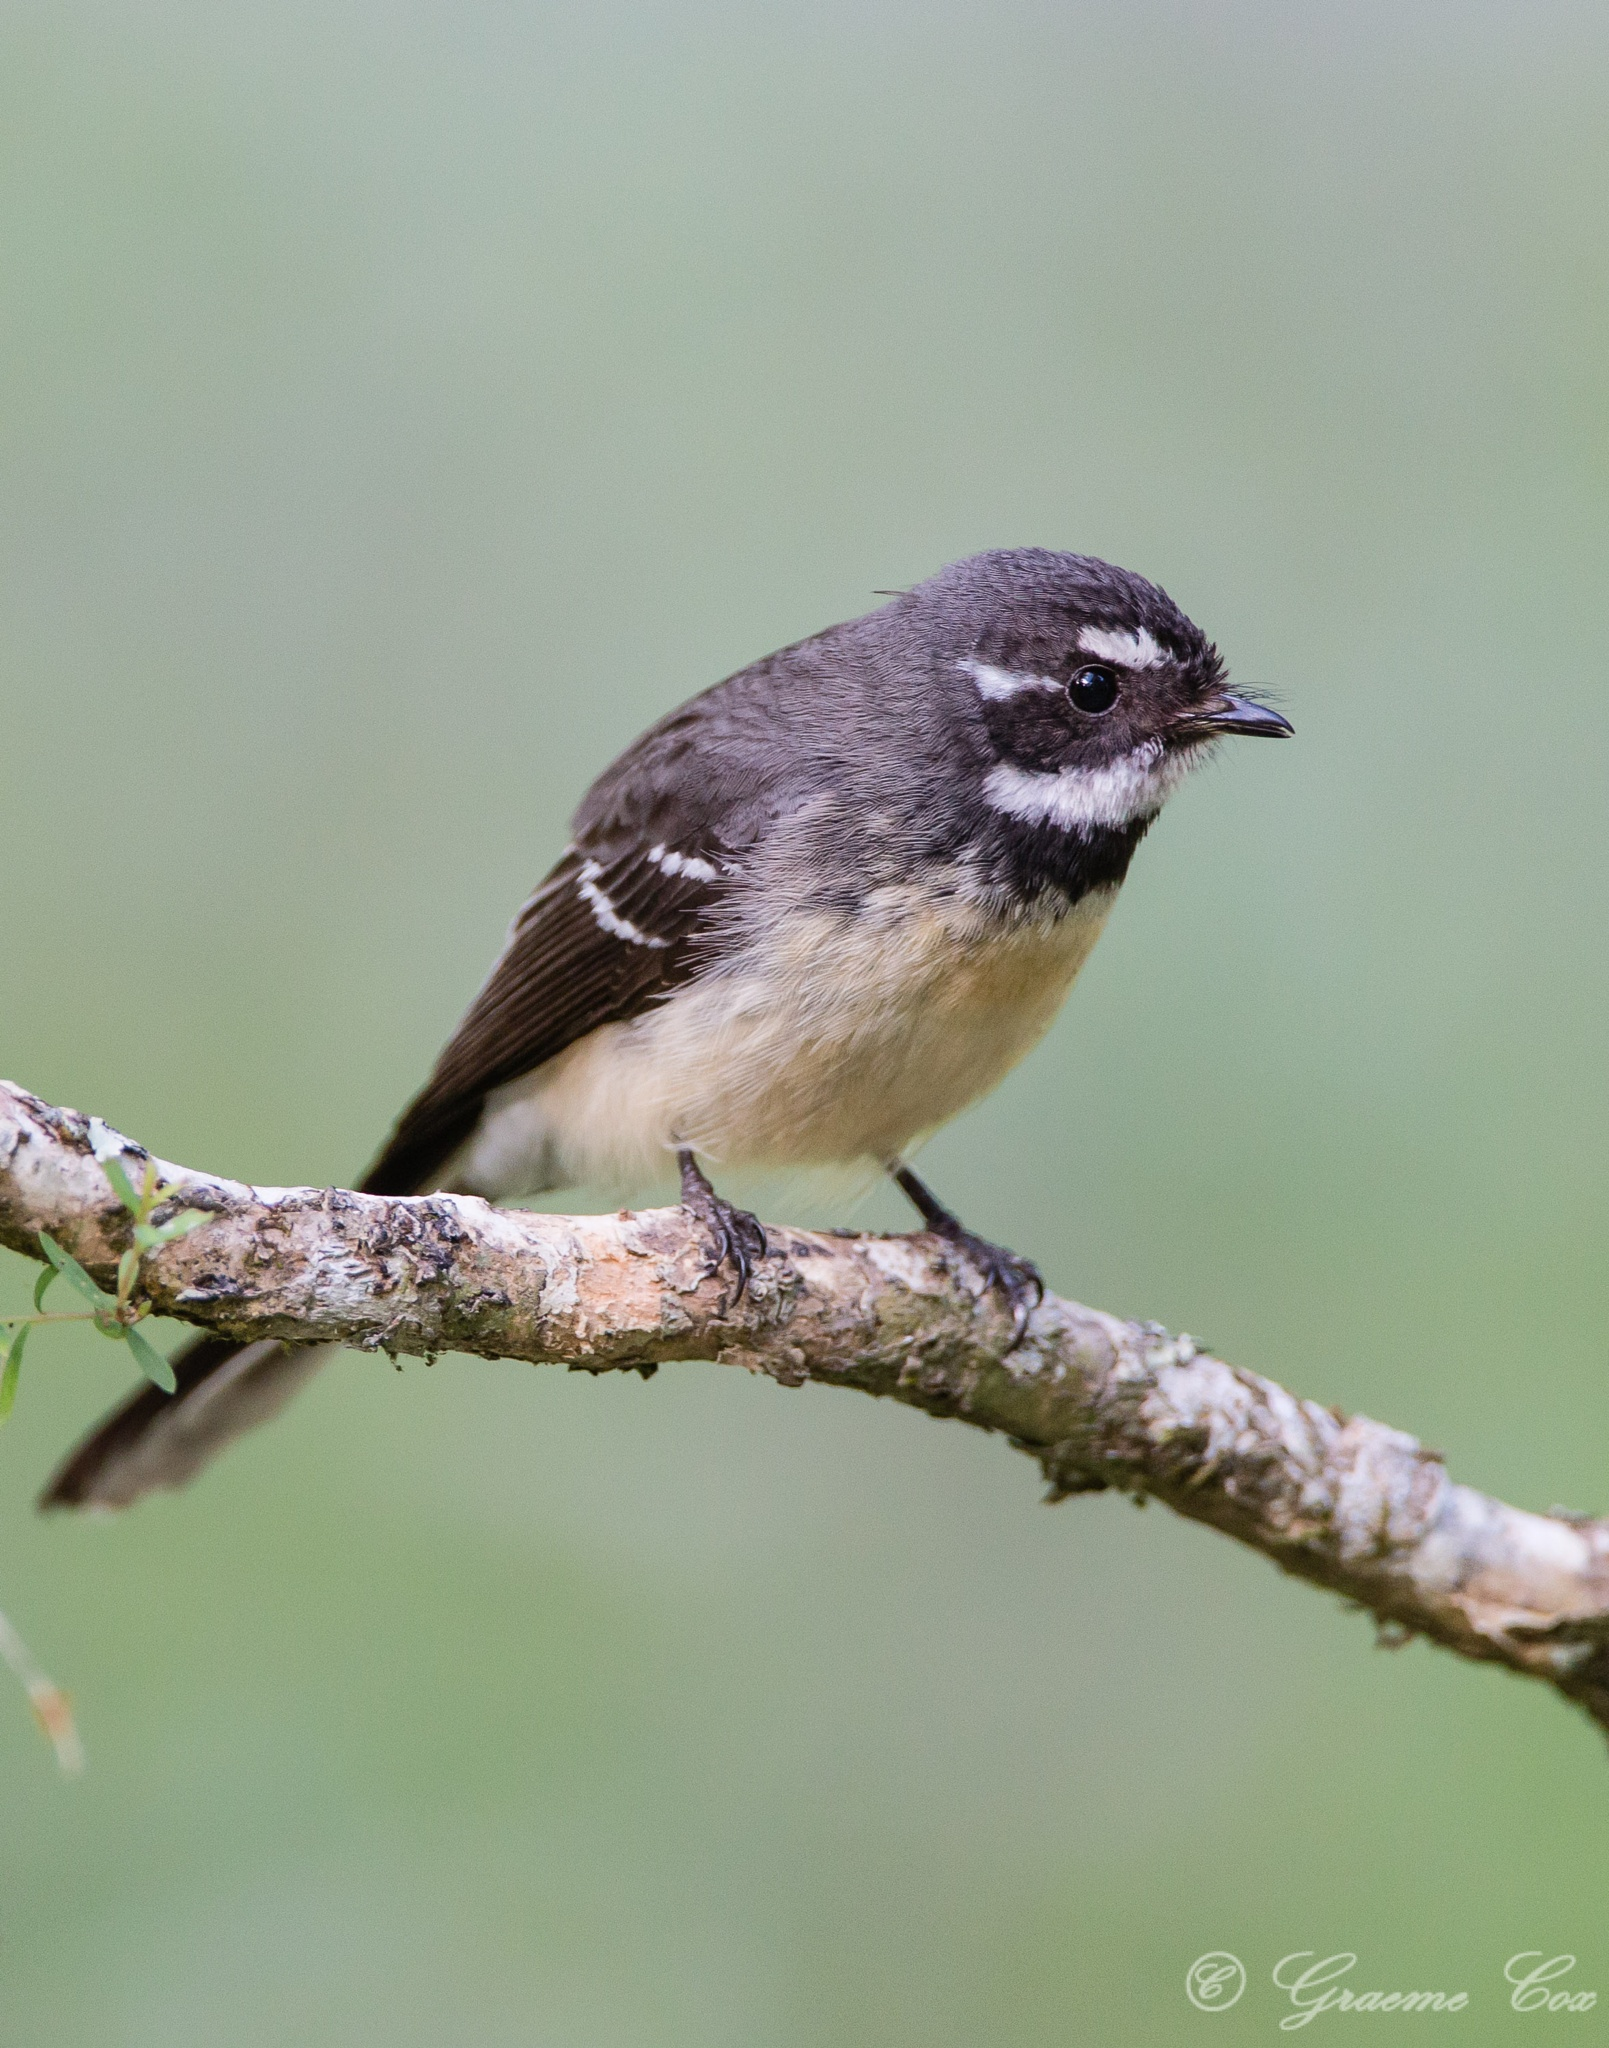 The grey fantail (Rhipidura albiscapa)  by Graeme Cox